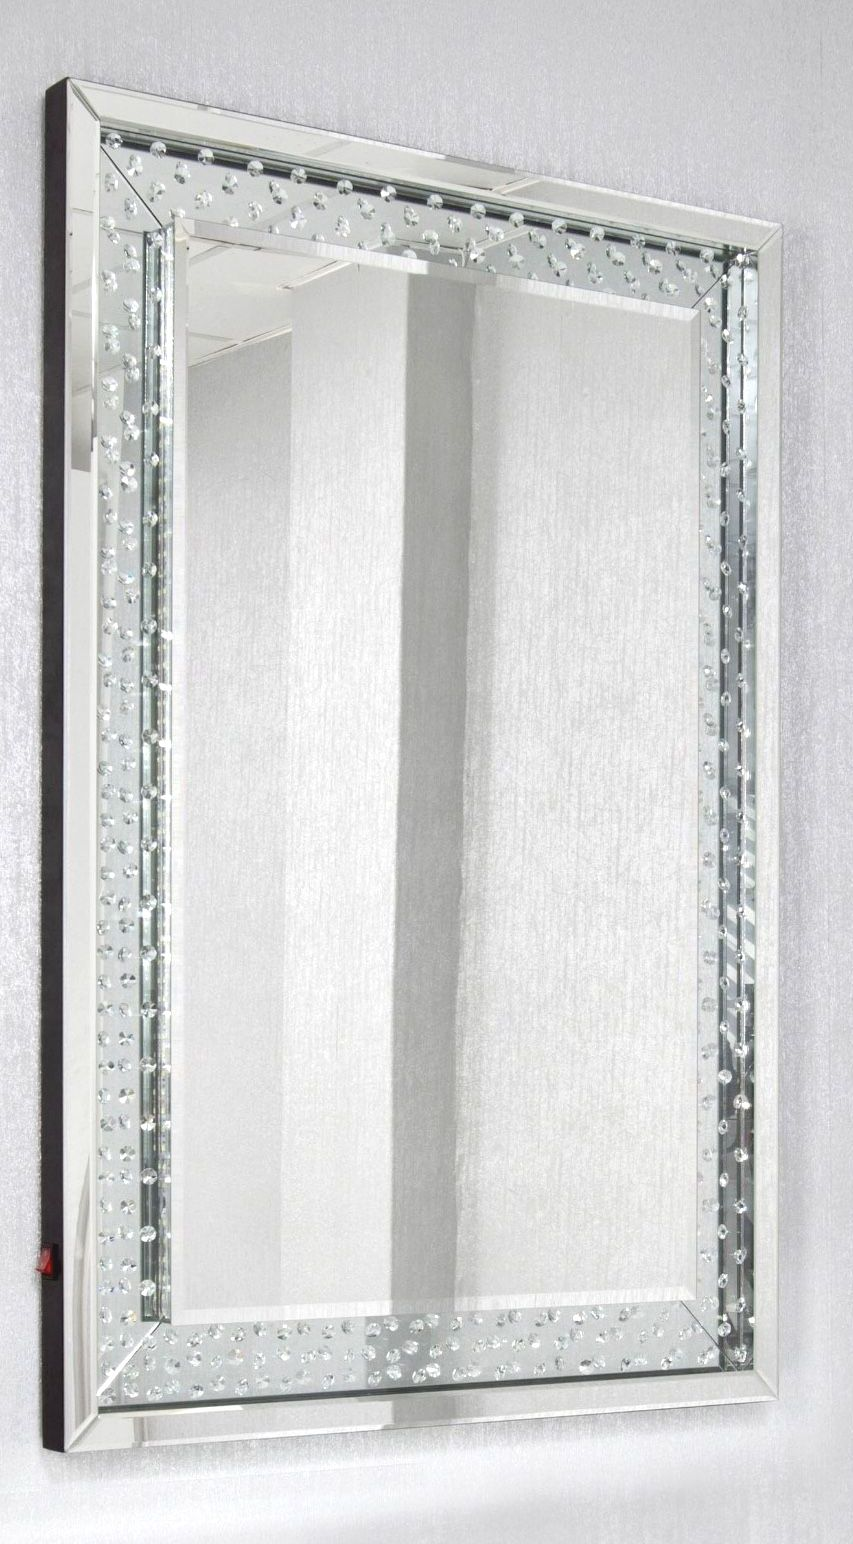 *Special Offer Floating Crystals Silver Wall Mirror 120cm x 80cm